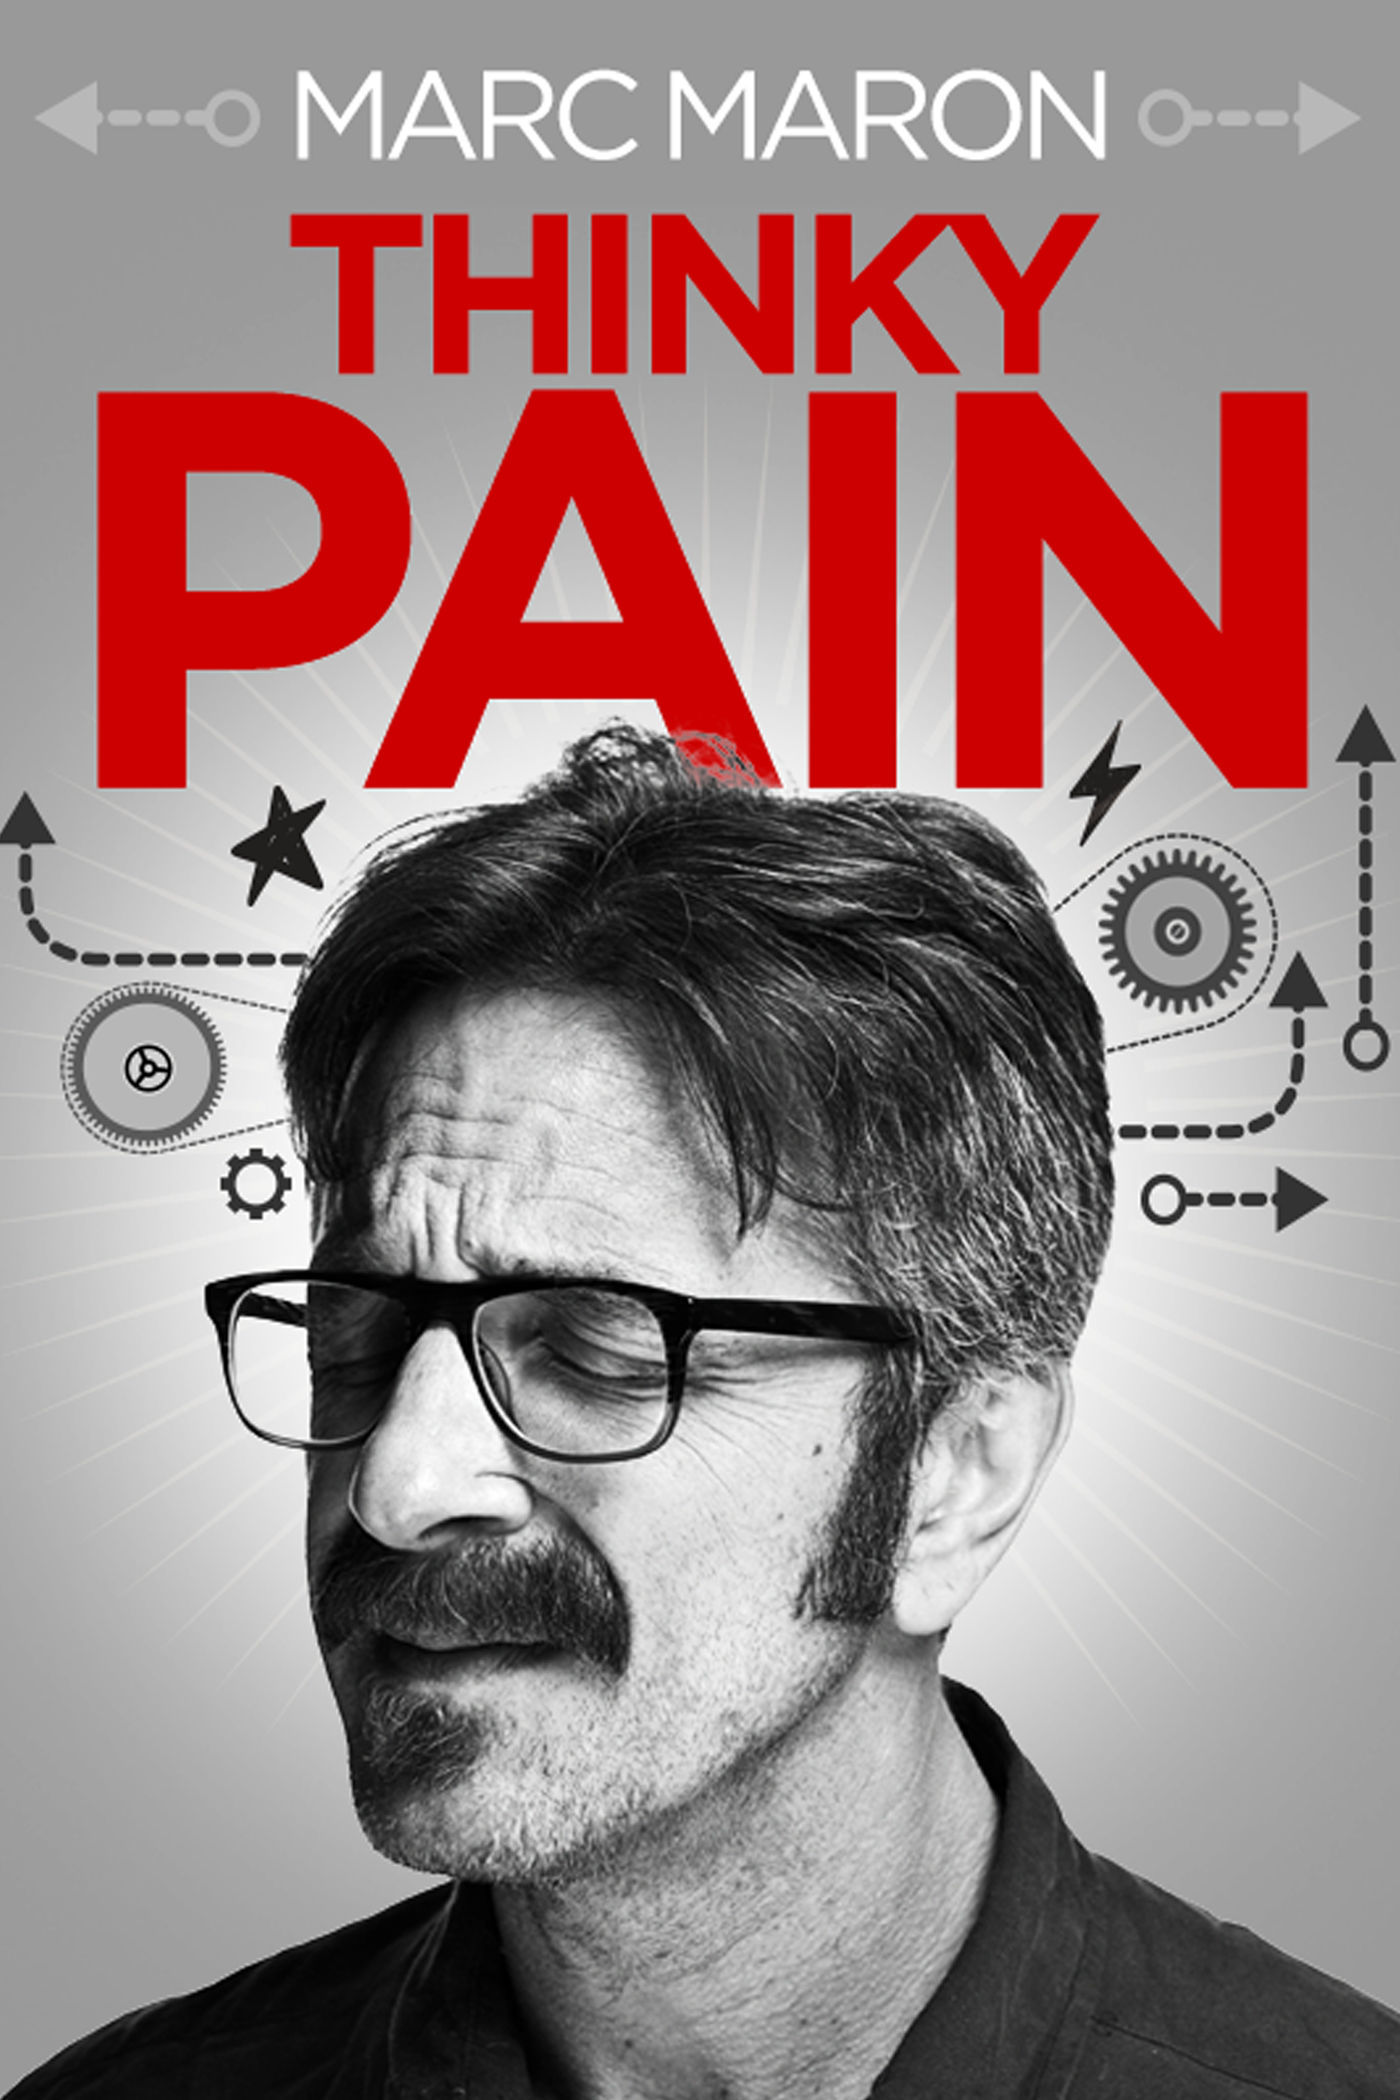 maron thinky pain Comedian of the Year: Marc Maron